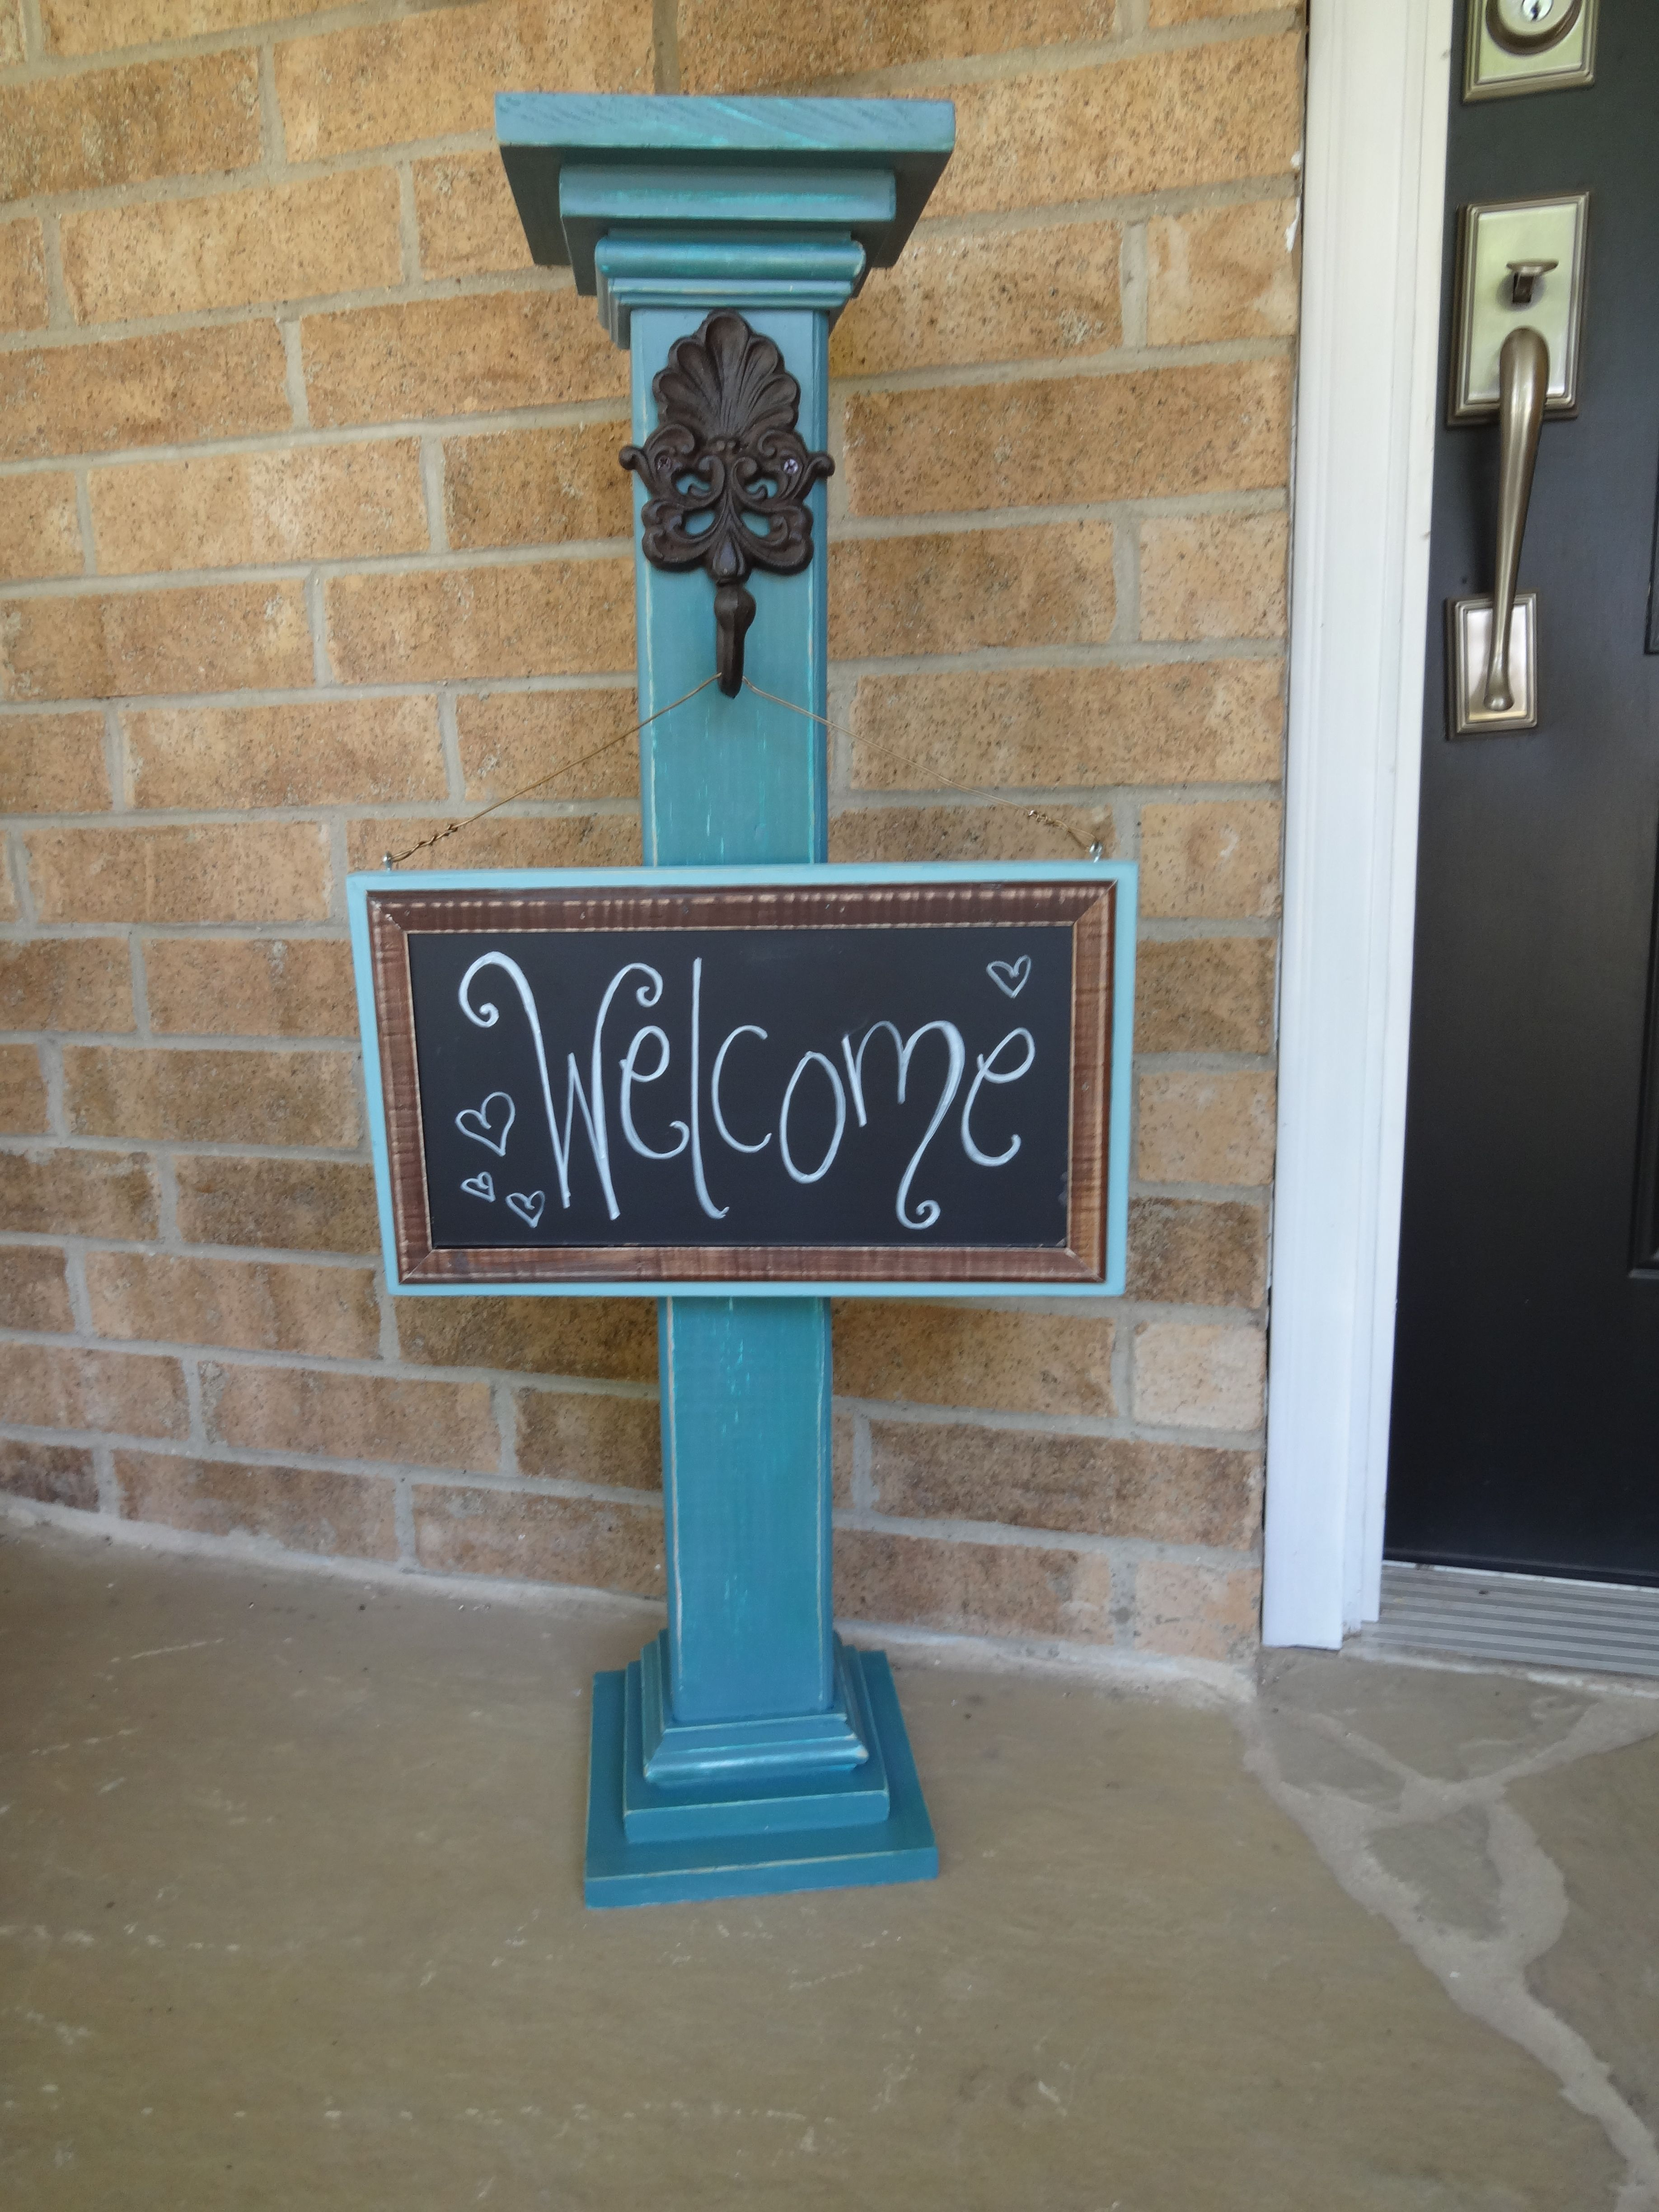 Porch signs welcome my porch barn wood quot what happens on the porch - Sign Post With Chalkboard Sign Can Say Anything To Welcome Your Guests Jrc Interior Decor Luxury Style Ideas Home Decor Ideas